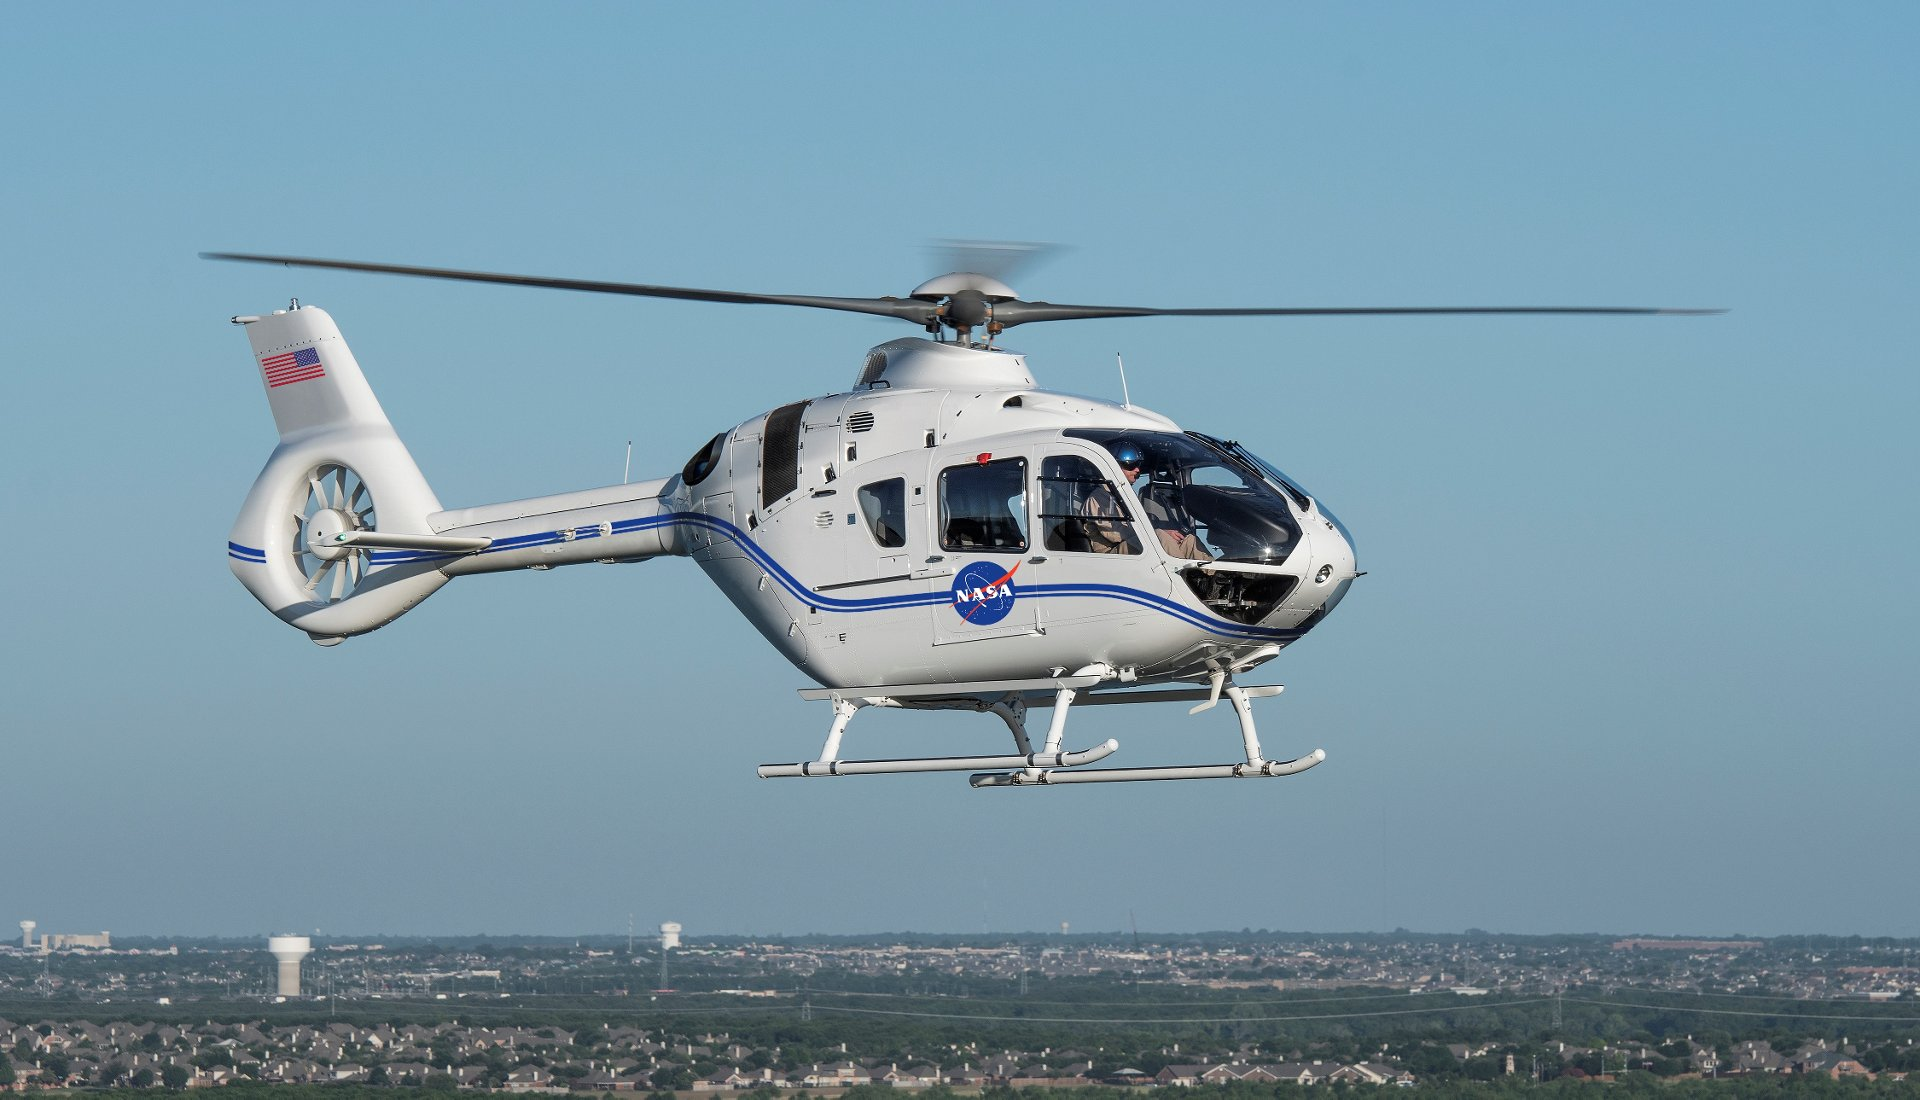 The U.S. agency will use the aircraft for security during rocket launches, emergency medical services and qualified personnel transport.